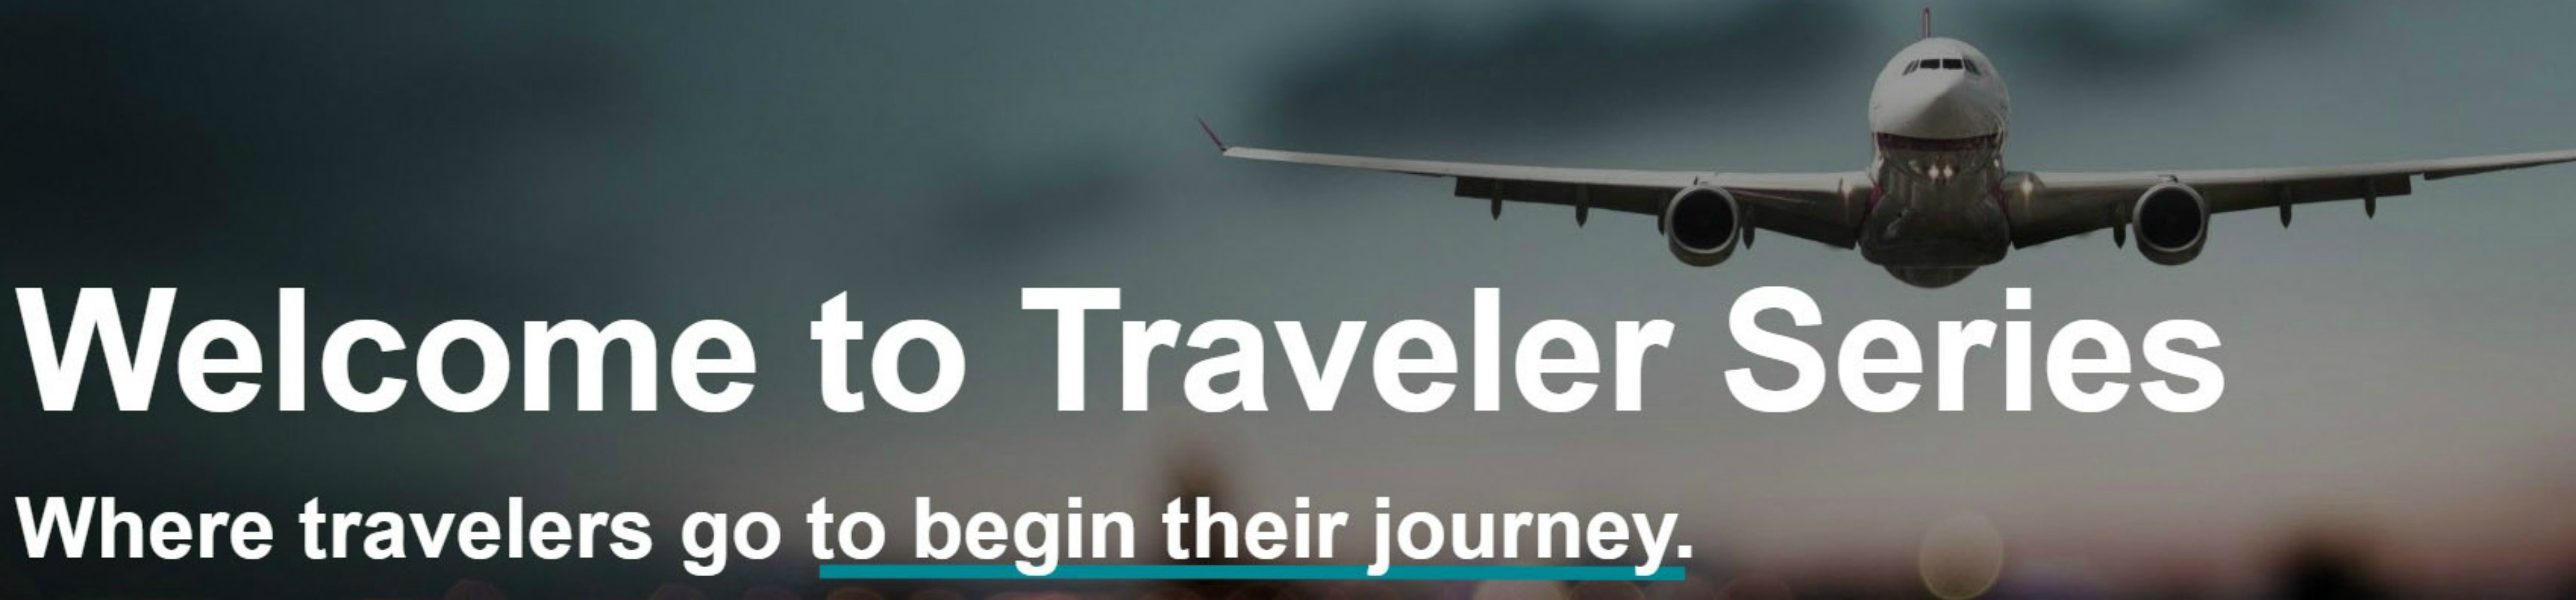 Welcome To Traveler Series